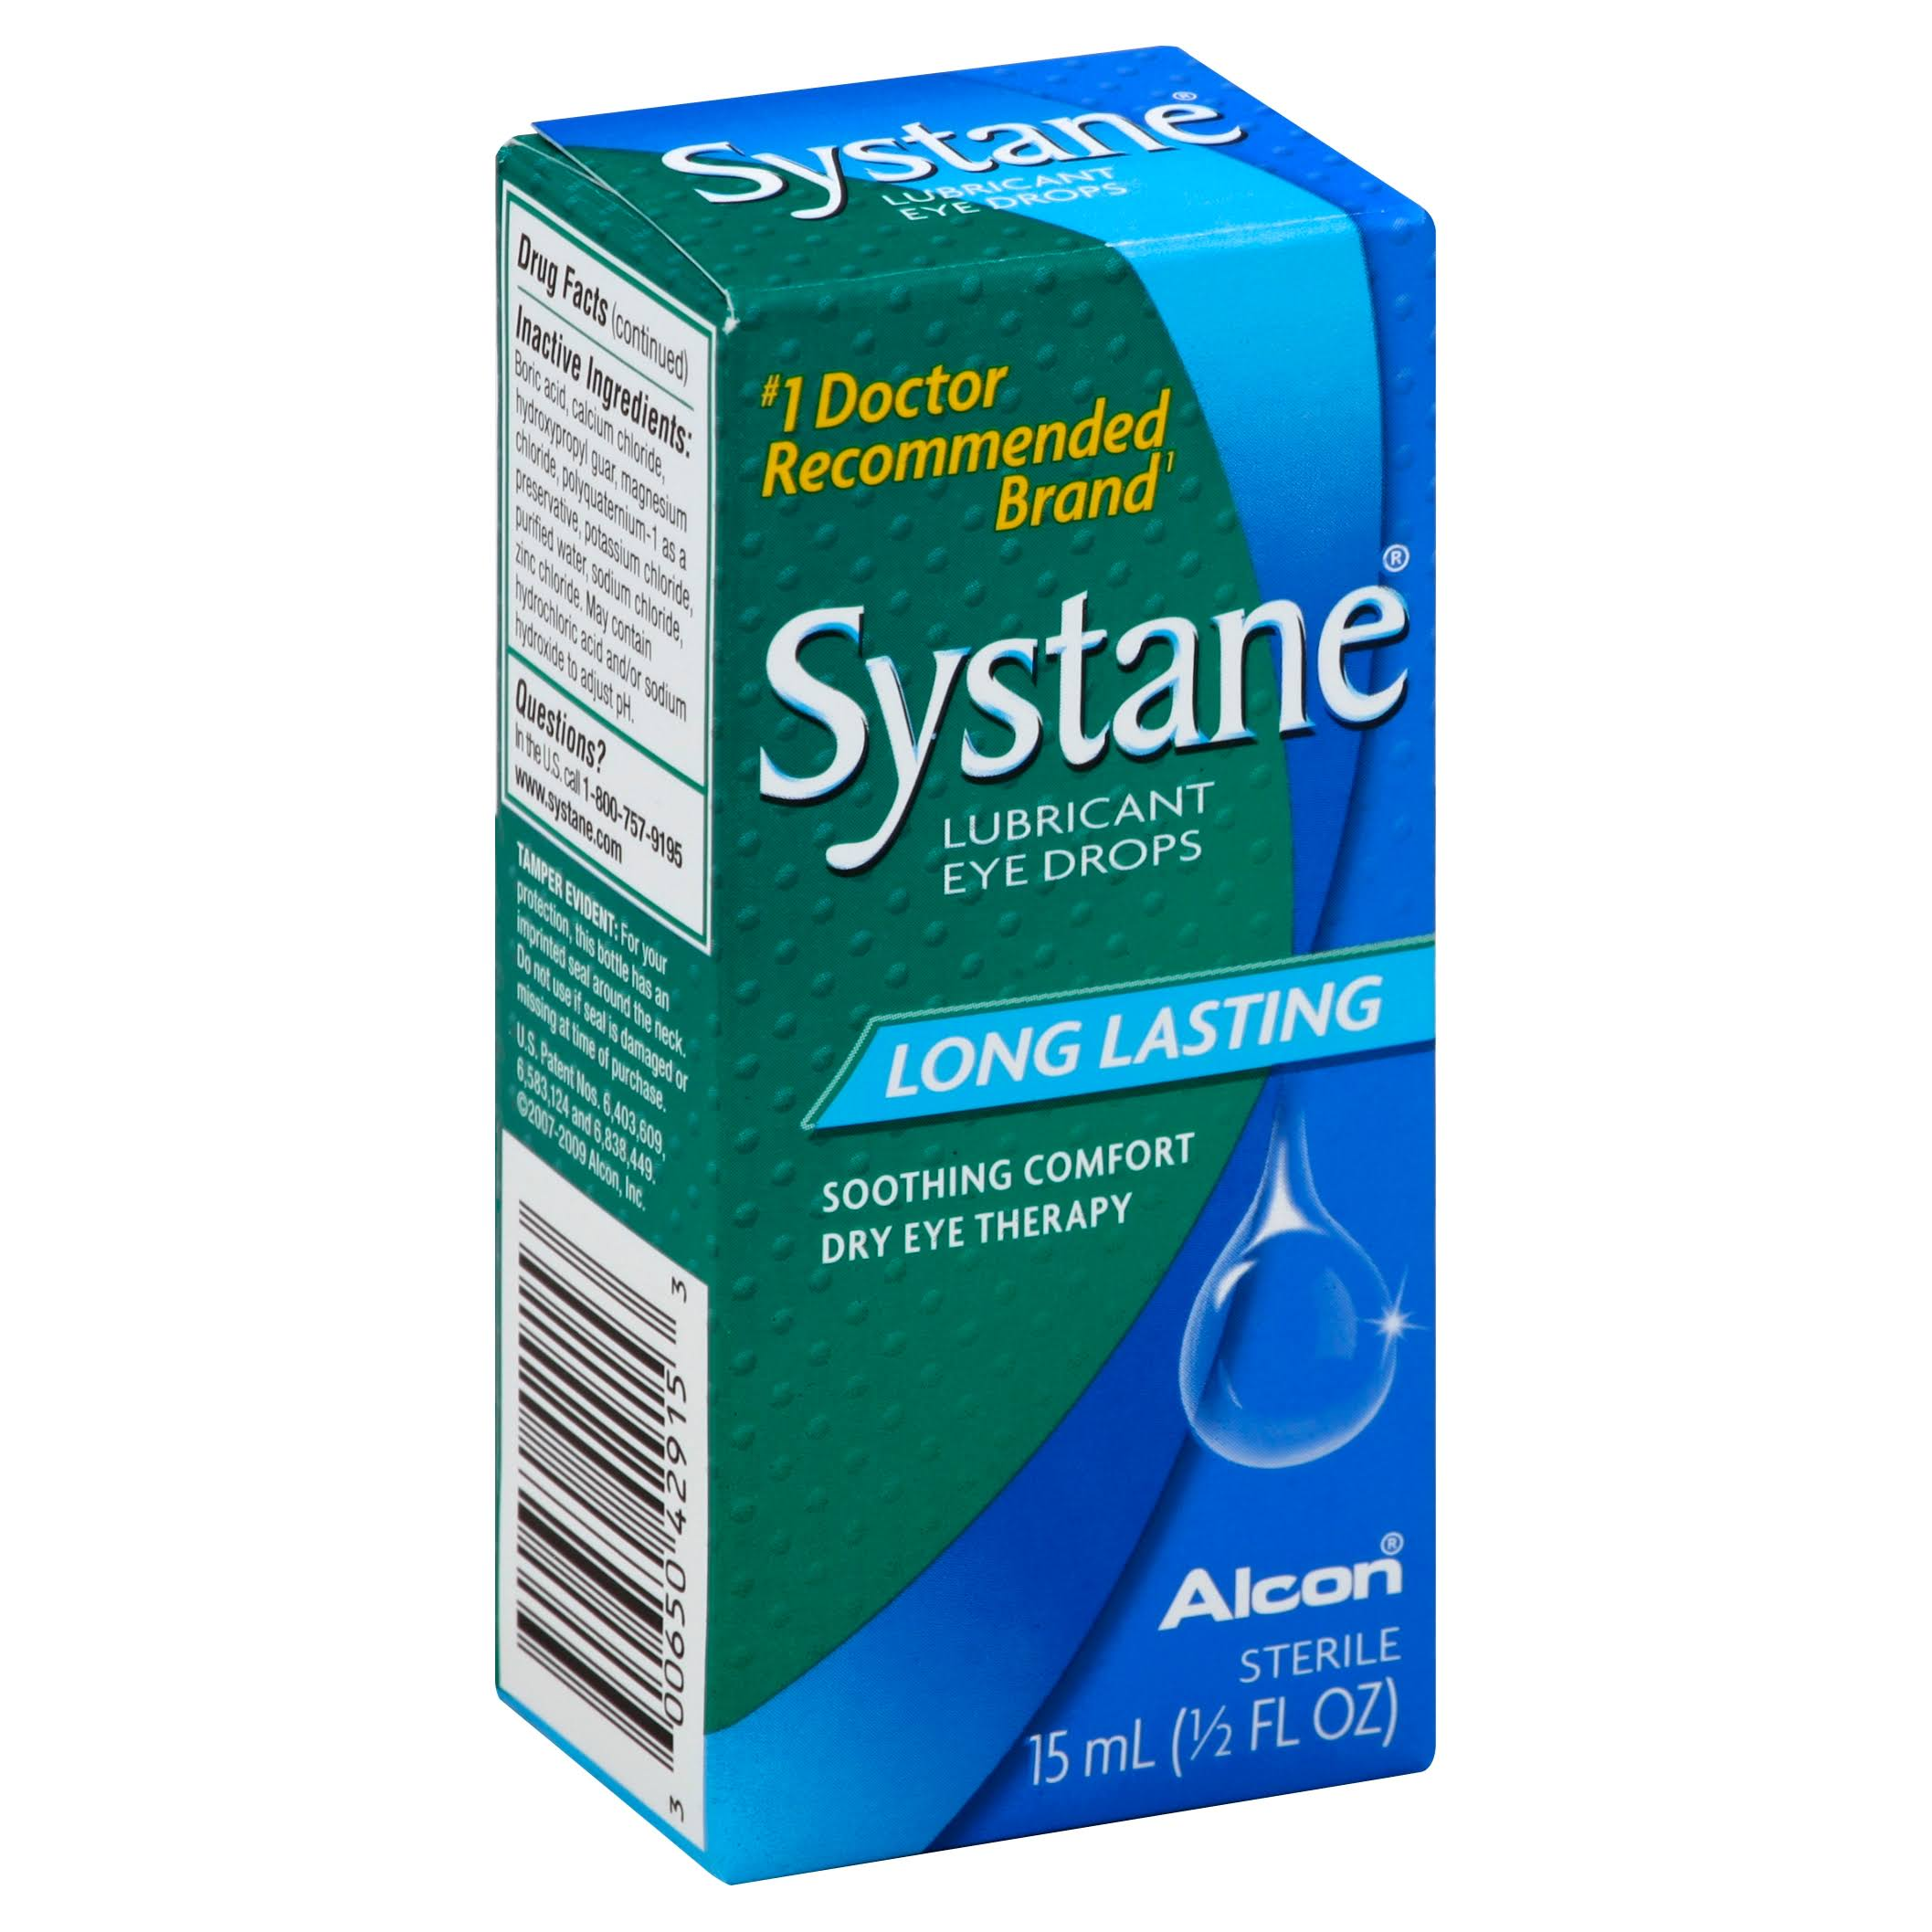 Alcon Systane Lubricant Eye Drops